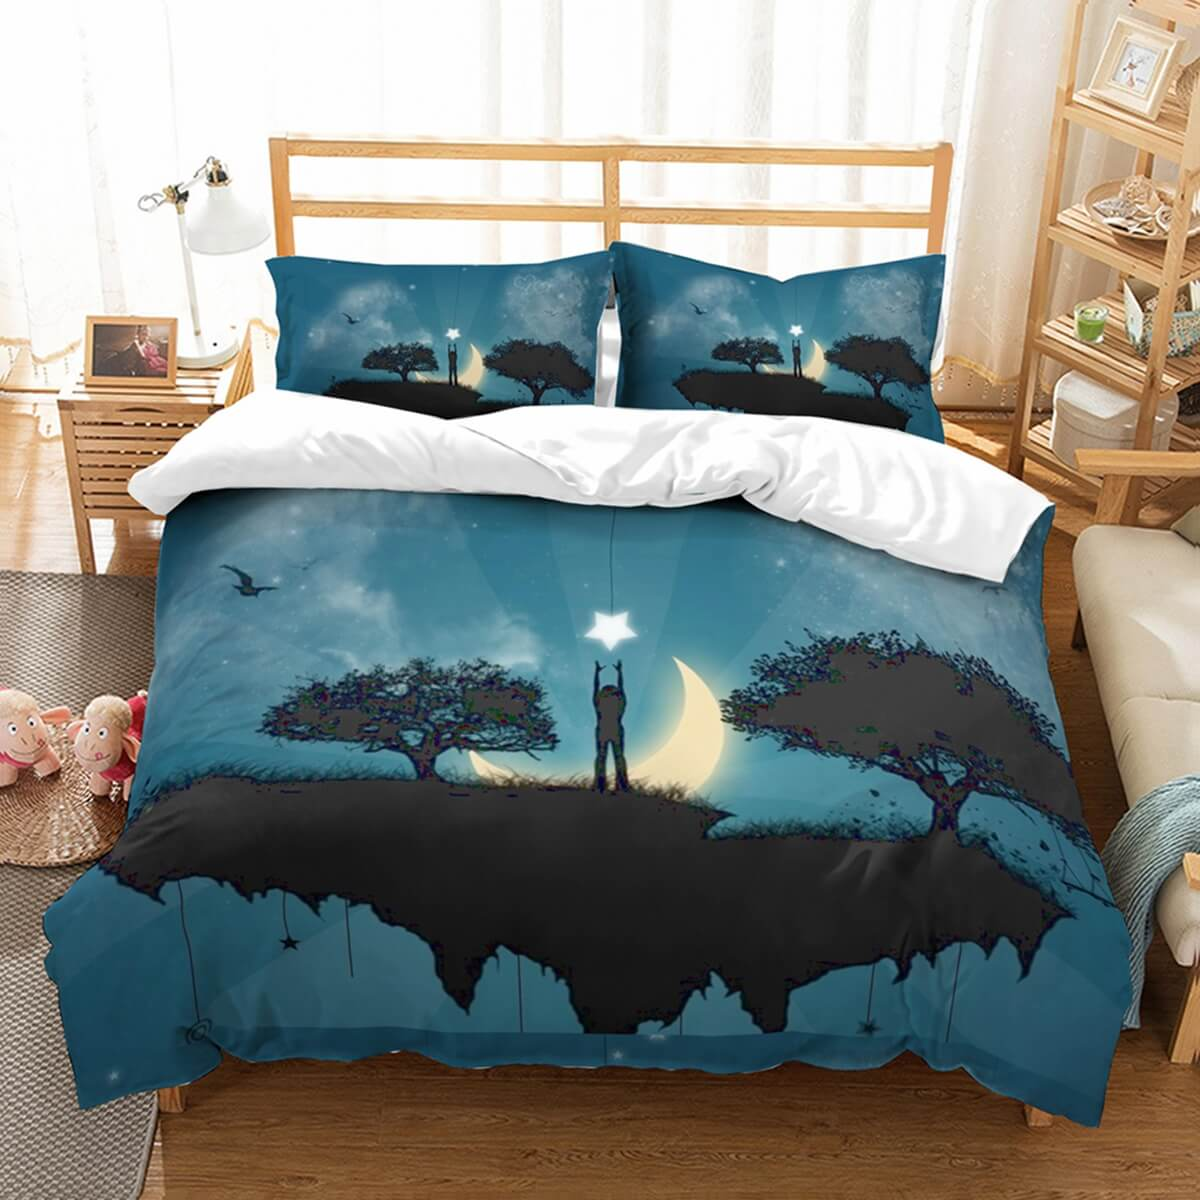 3D Customize Star Island Bedding Set Duvet Cover Set Bedroom Set Bedlinen